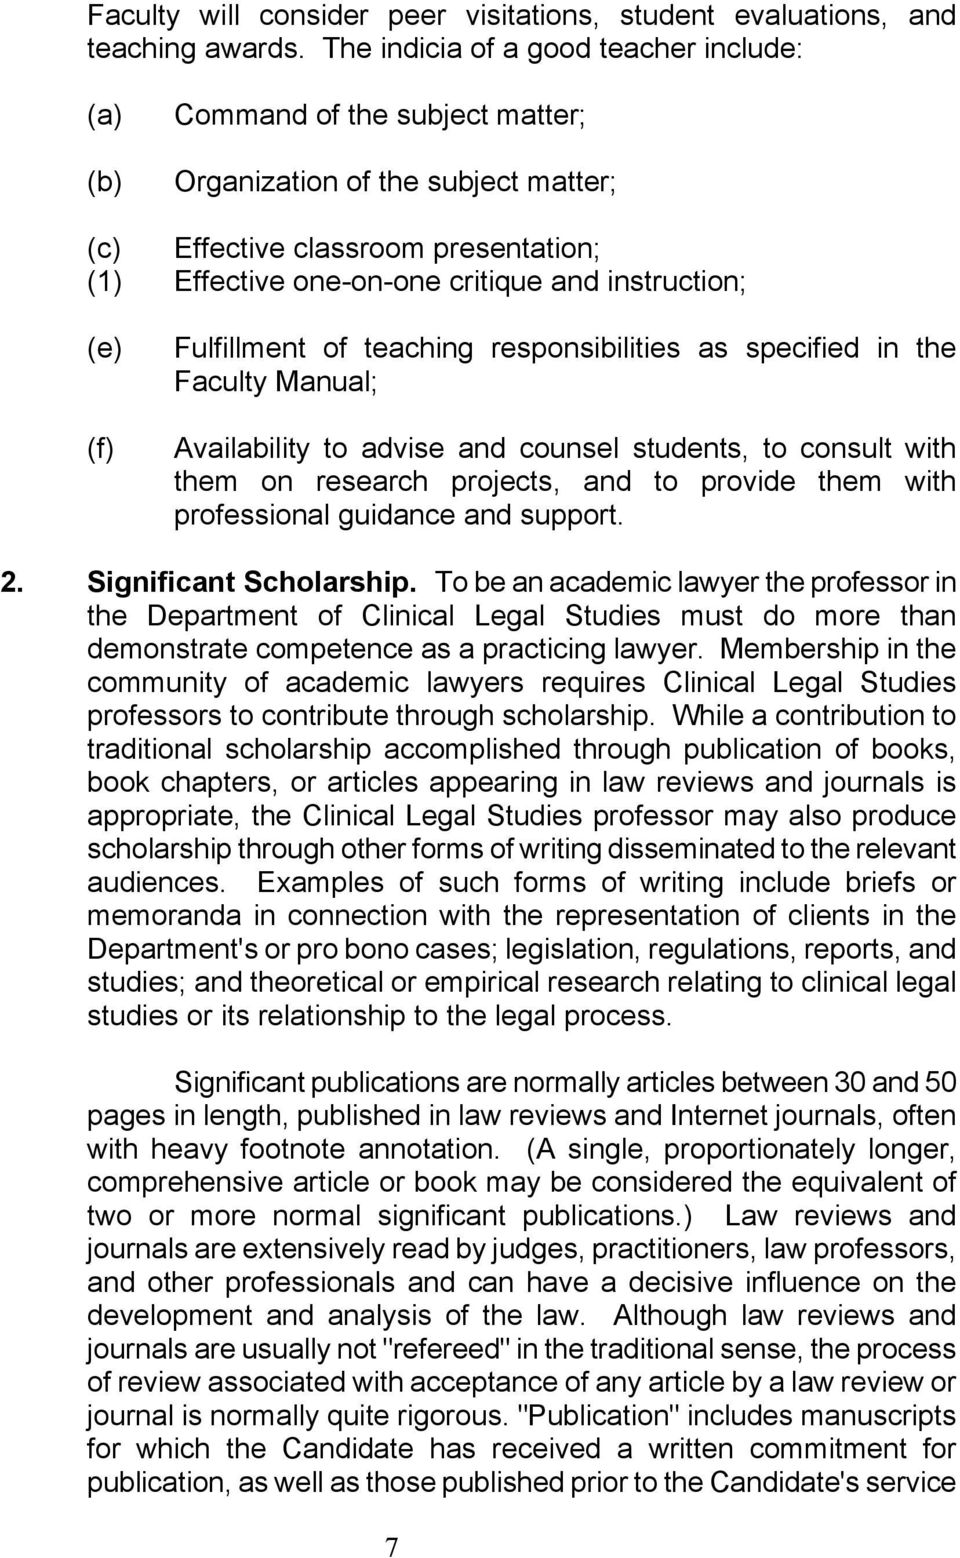 (f) Fulfillment of teaching responsibilities as specified in the Faculty Manual; Availability to advise and counsel students, to consult with them on research projects, and to provide them with